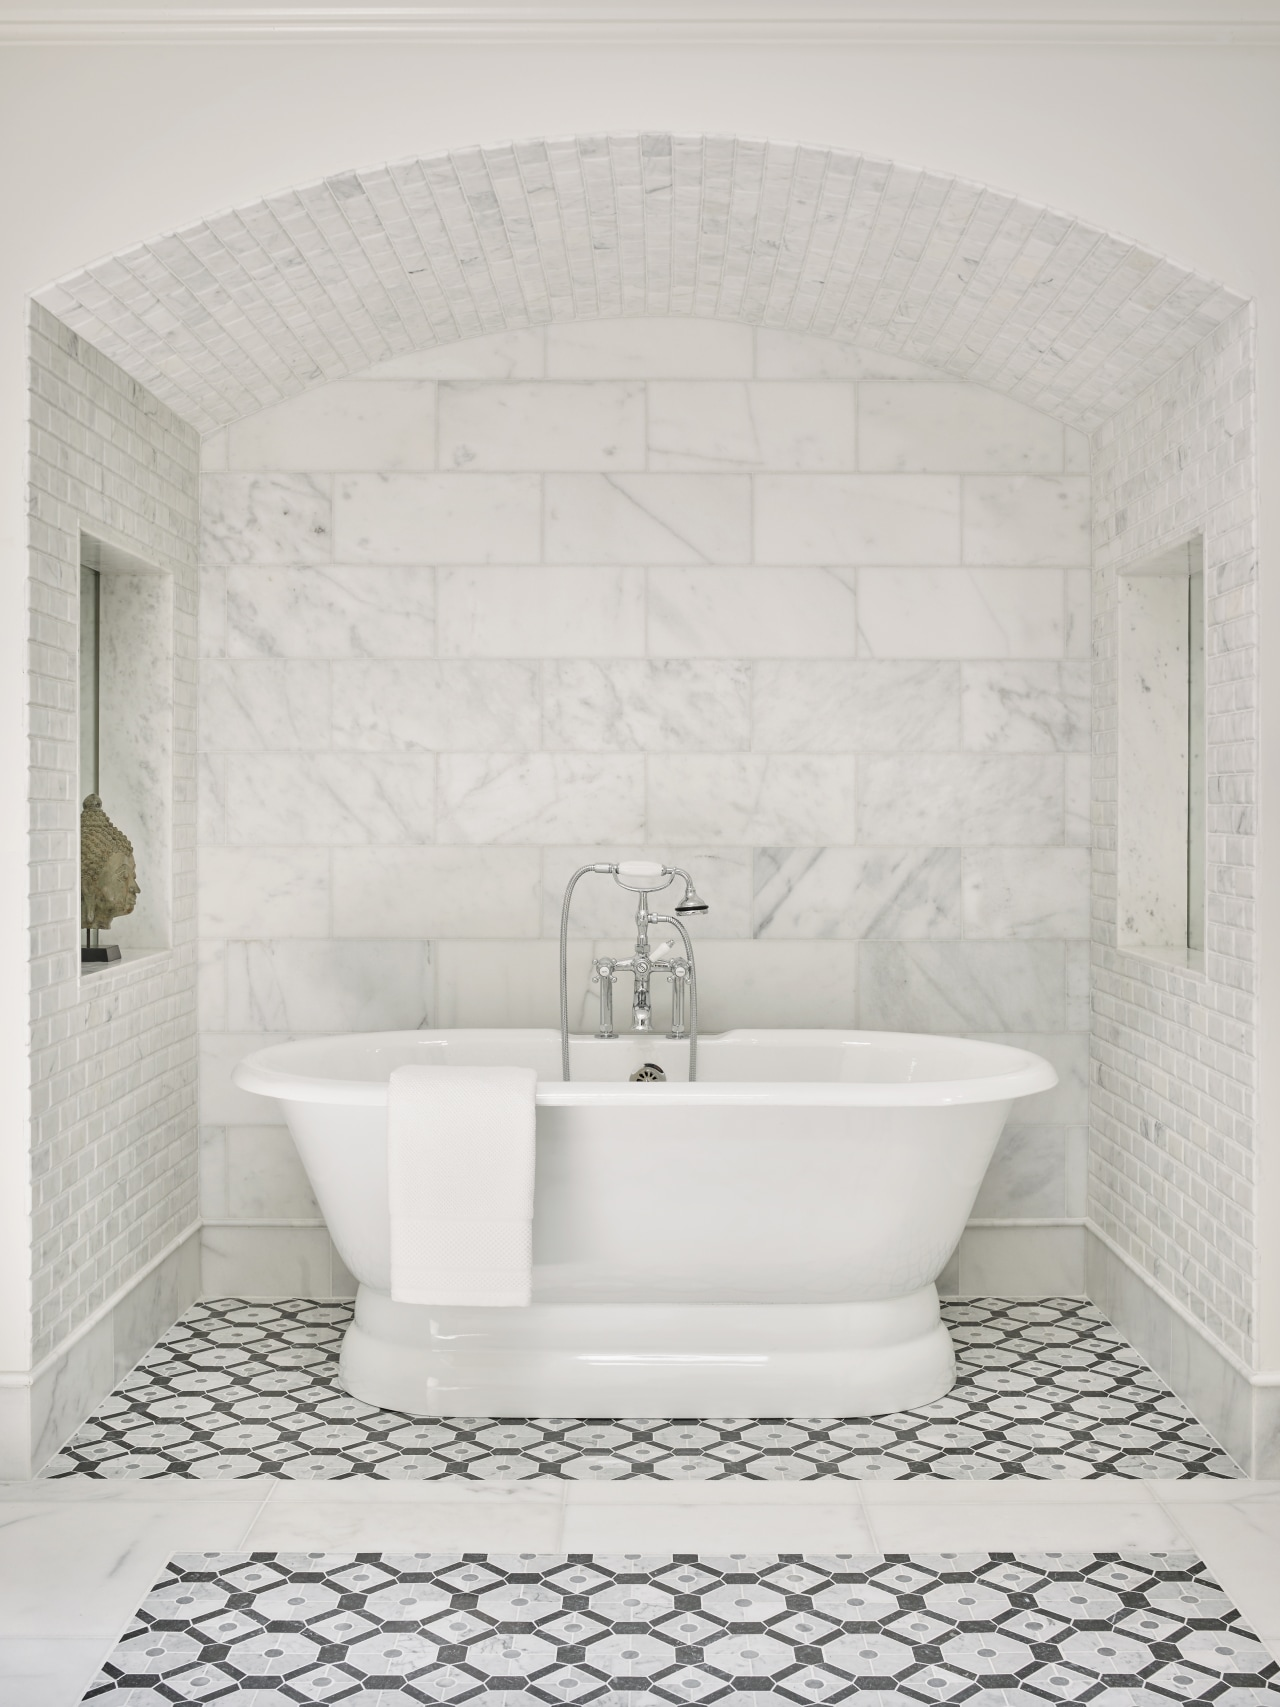 ​​​​​​​A freestanding bath tub with chunky chrome fittings bathroom, ceramic, floor, flooring, plumbing fixture, tap, tile, wall, white, Freestanding bath, Mark Williams Design